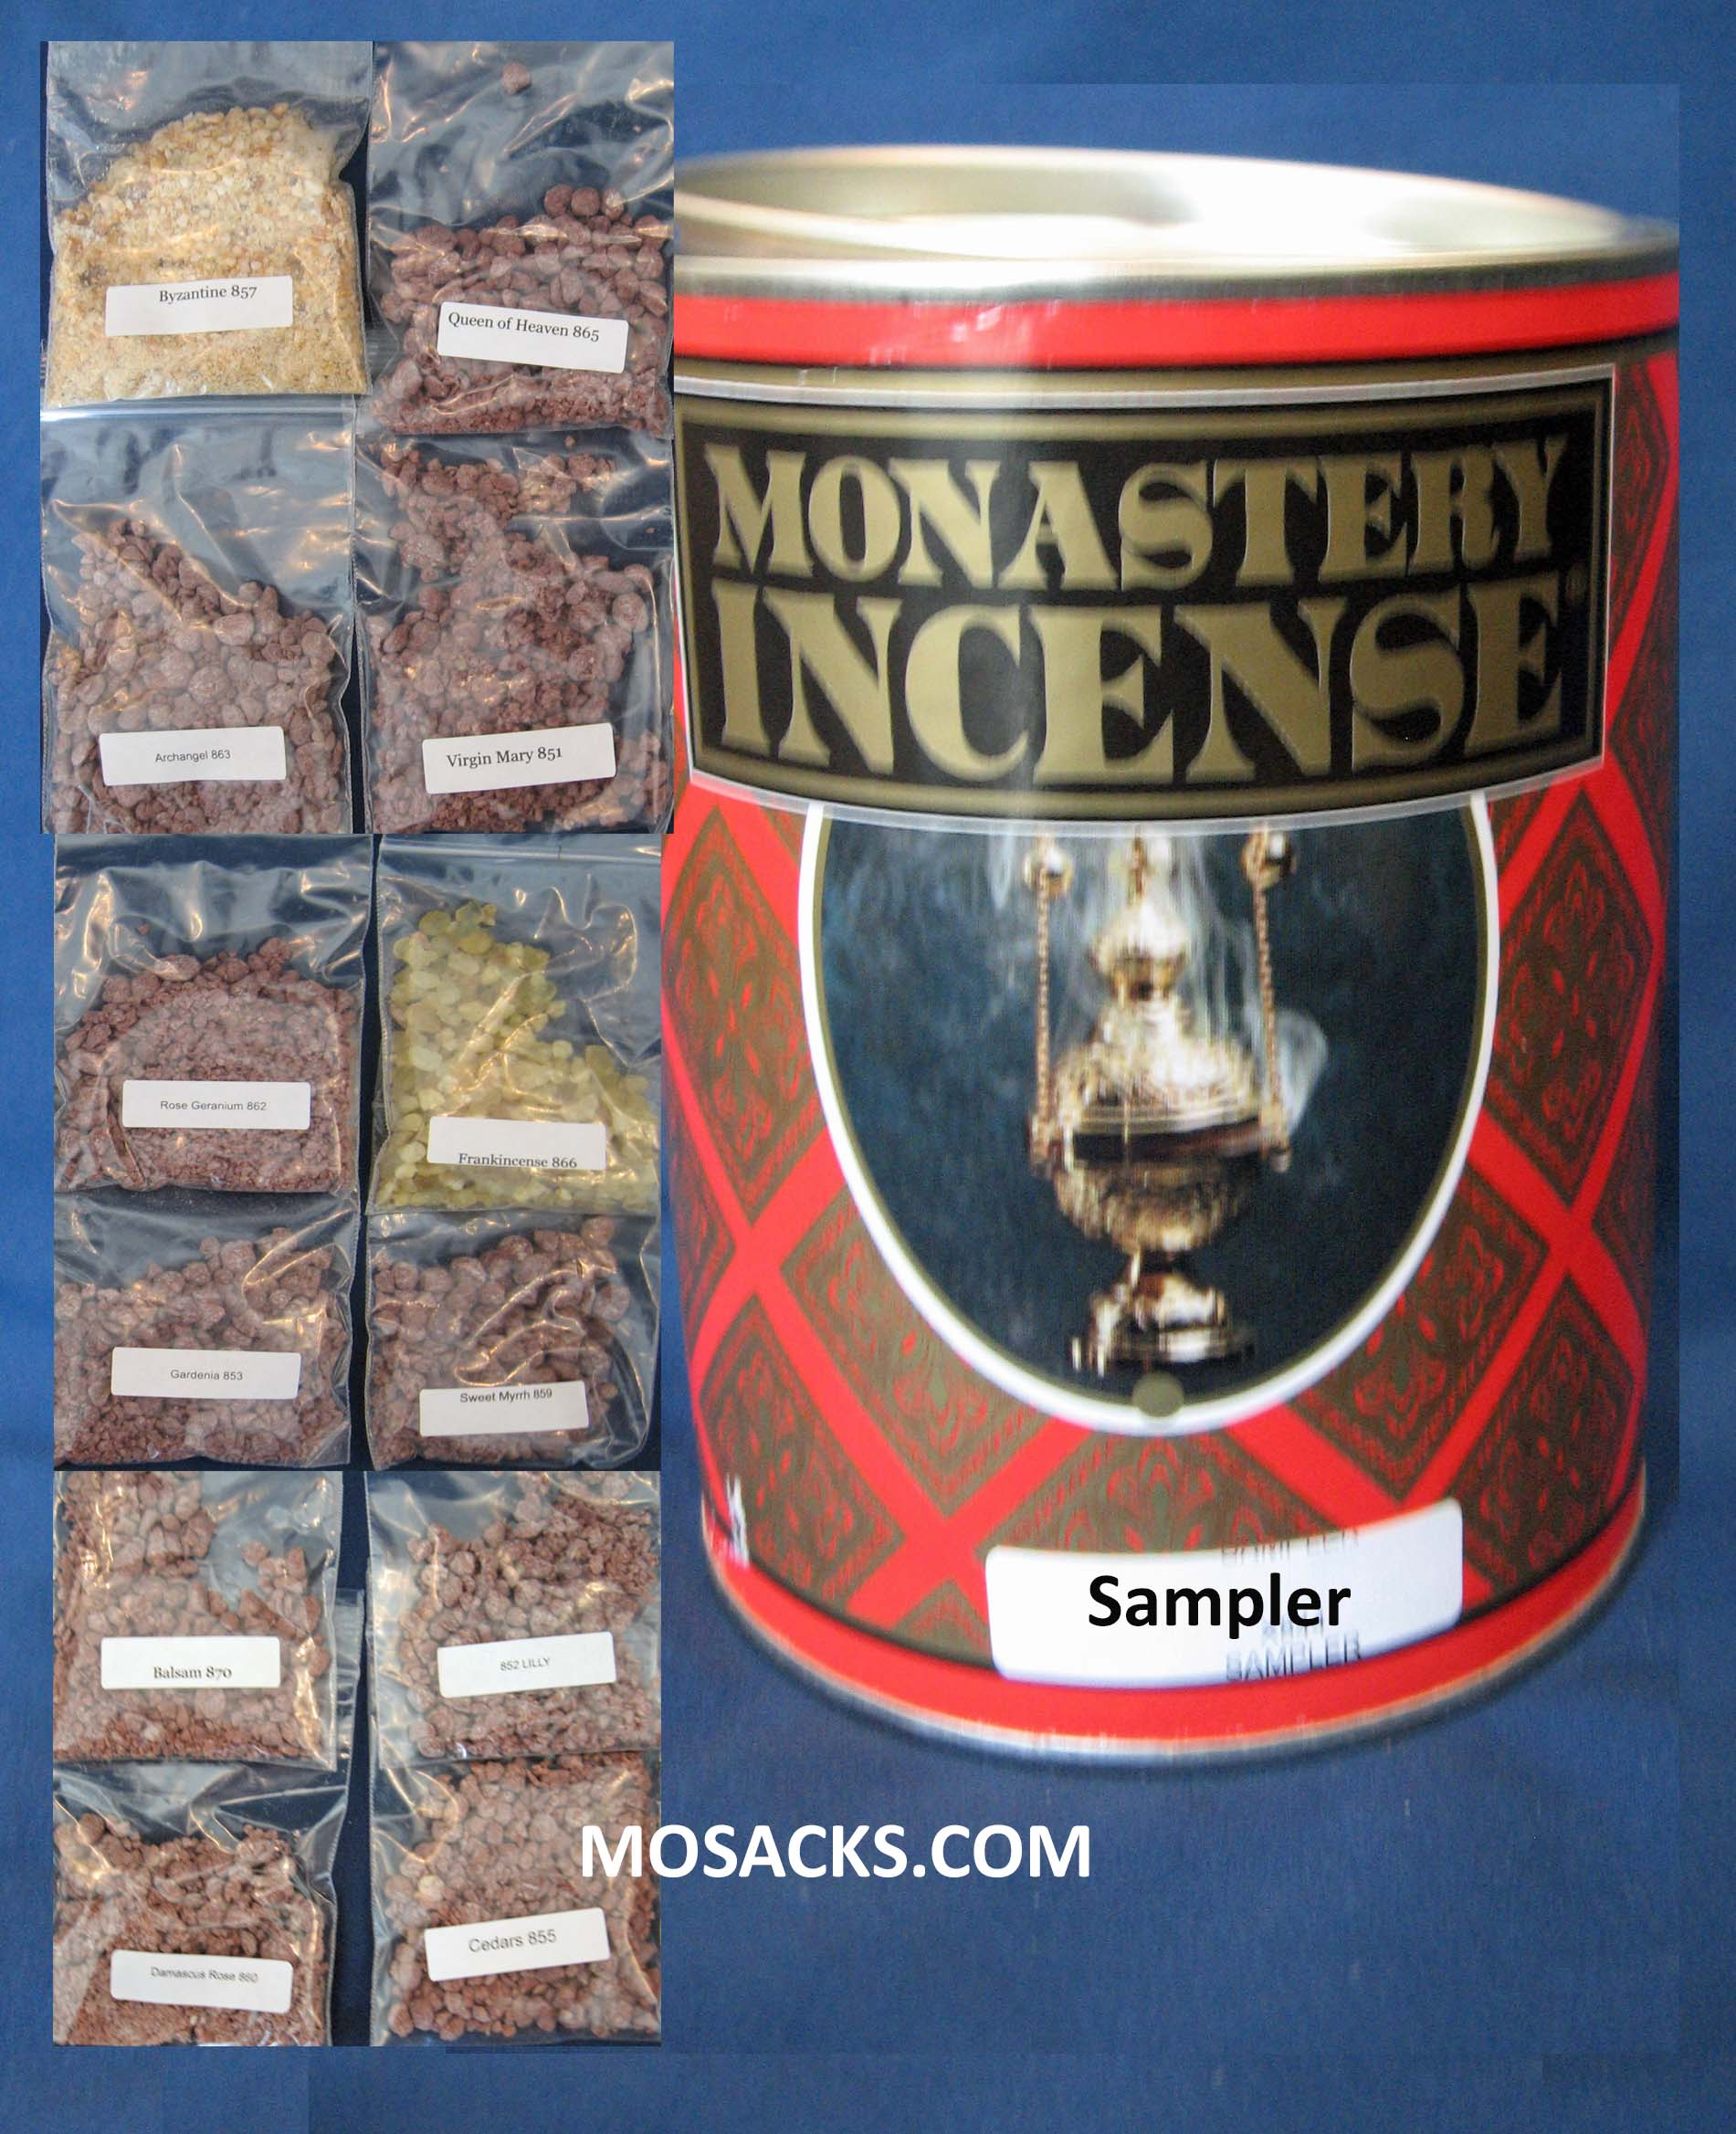 Incense Assortment Pack 12 ounce Monastery Incense Sampler-844